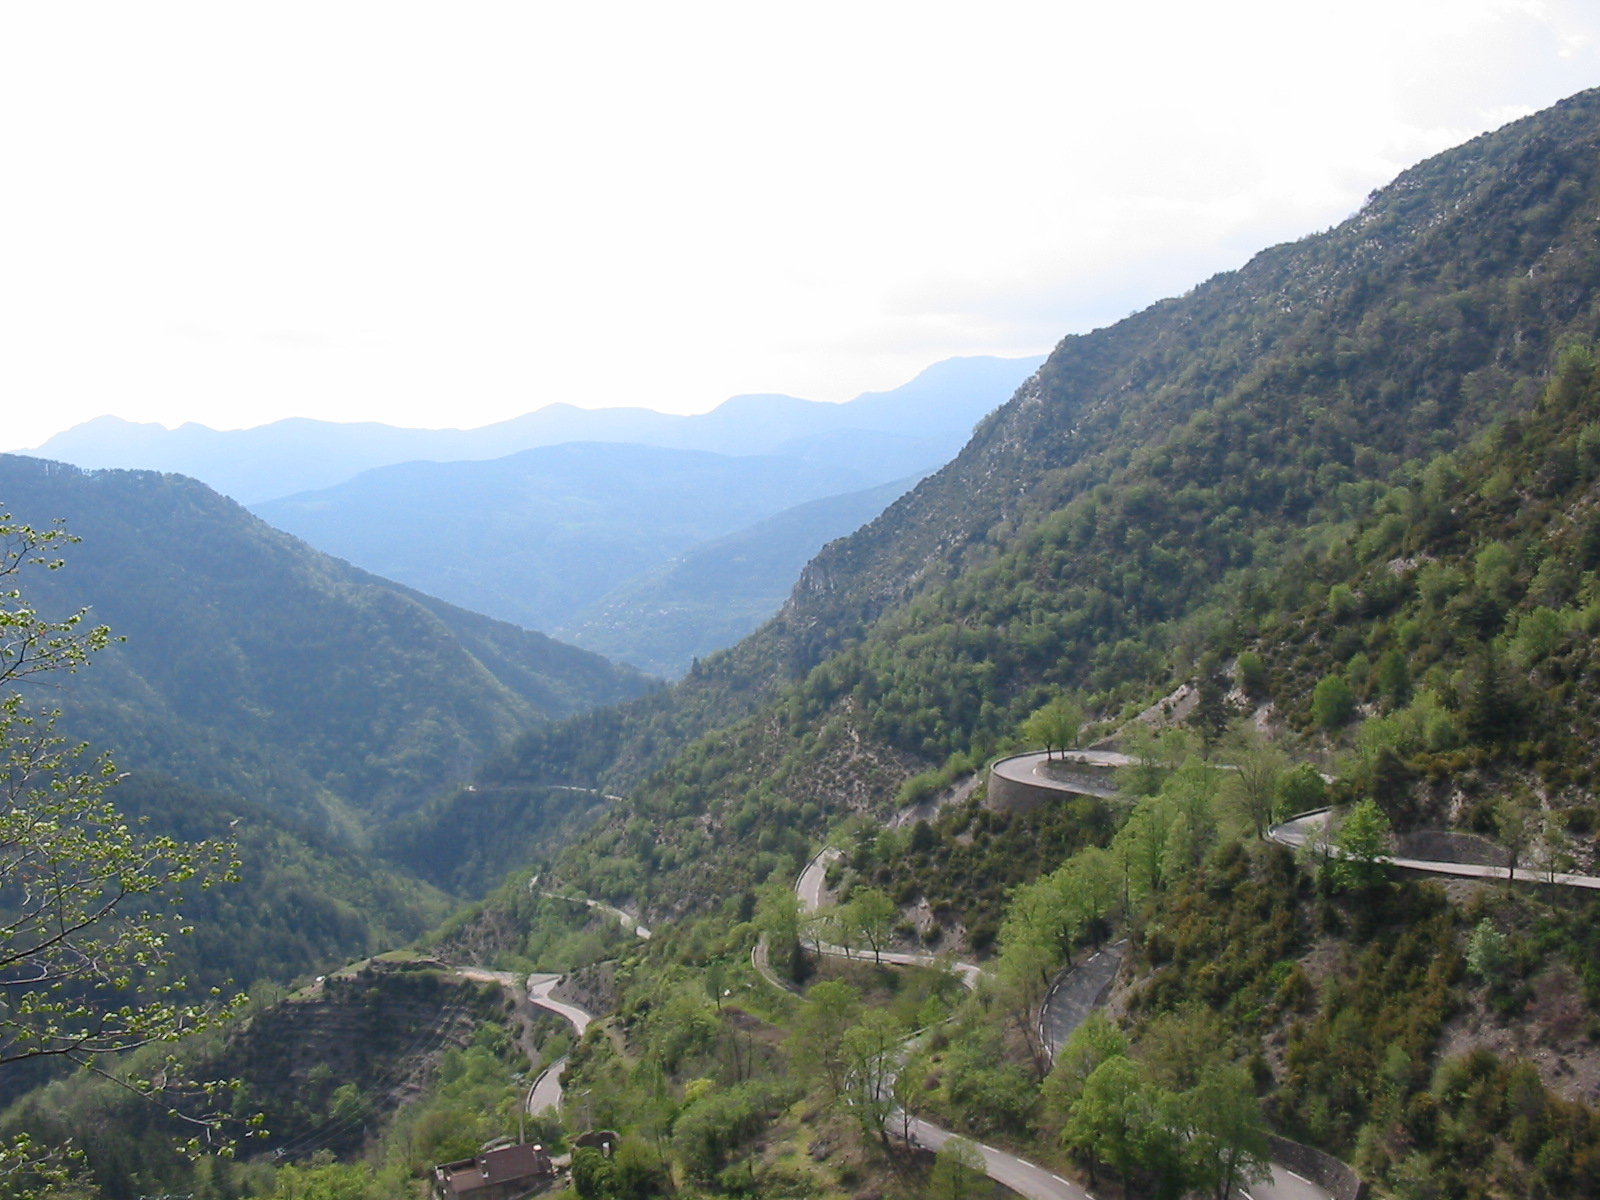 The Col de Turini (el. 1607 m) is a high mountain pass in the Alps in the department of Alpes-Maritimes in France. It lies near Sospel, between the communes of Moulinet and La Bollène-Vésubie in the Arrondissement of Nice. It is famous for a stage of the Monte Carlo Rally which is held on the tight road with its many hairpin turns. Until a few years ago, the Col de Turini was also driven at night, with thousands of fans watching the